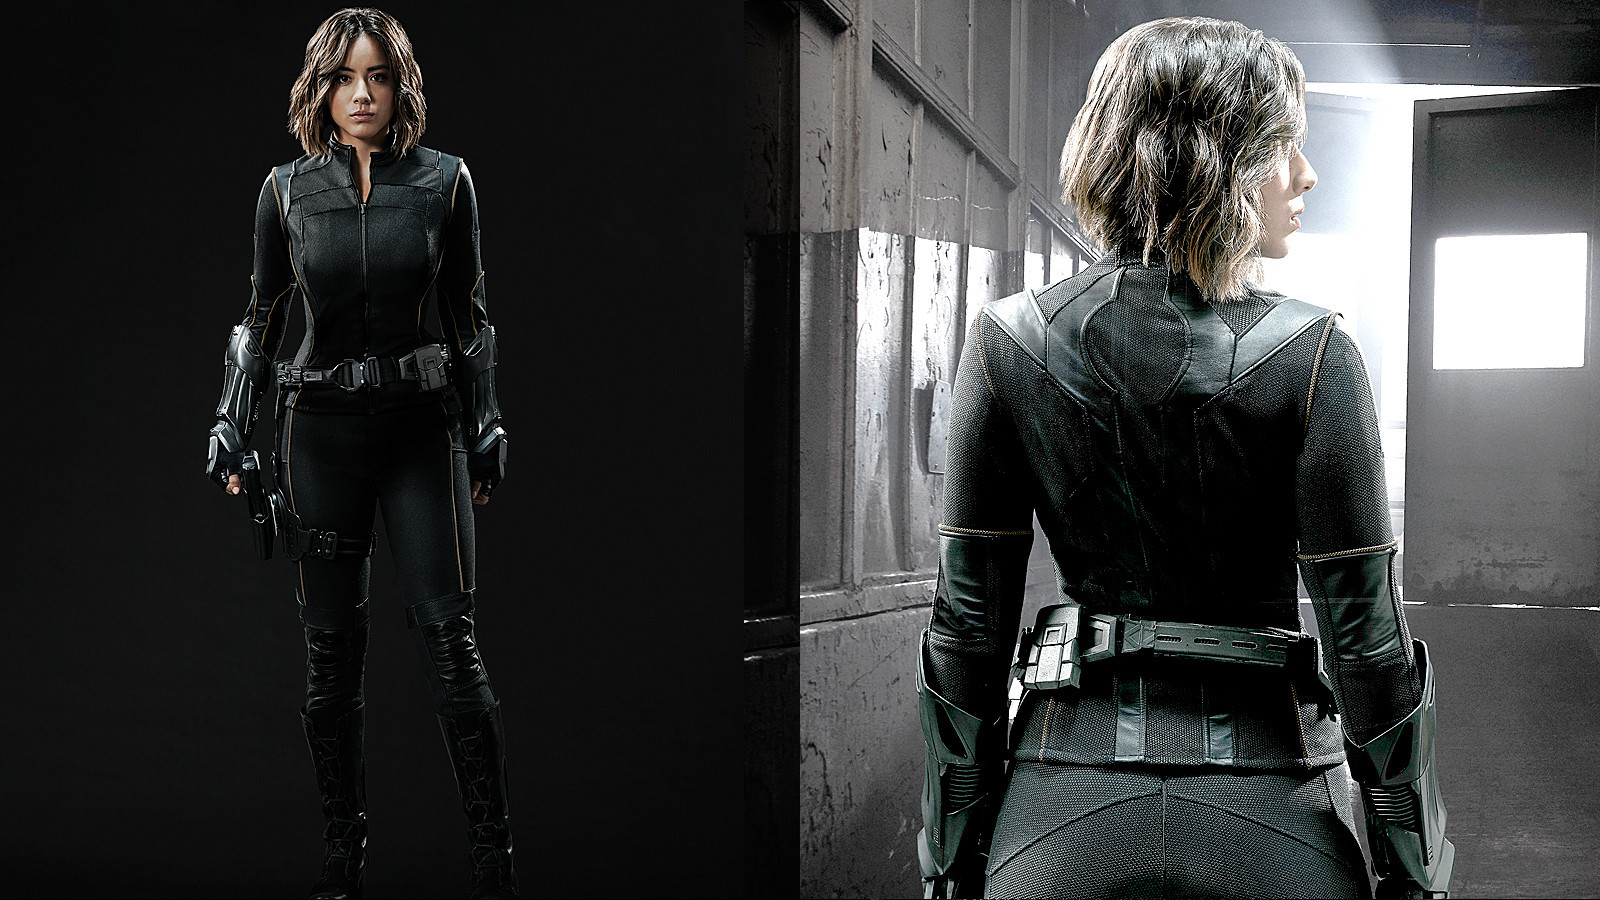 Skye Agents Of Shield Images Skye In Tactical Suit Hd